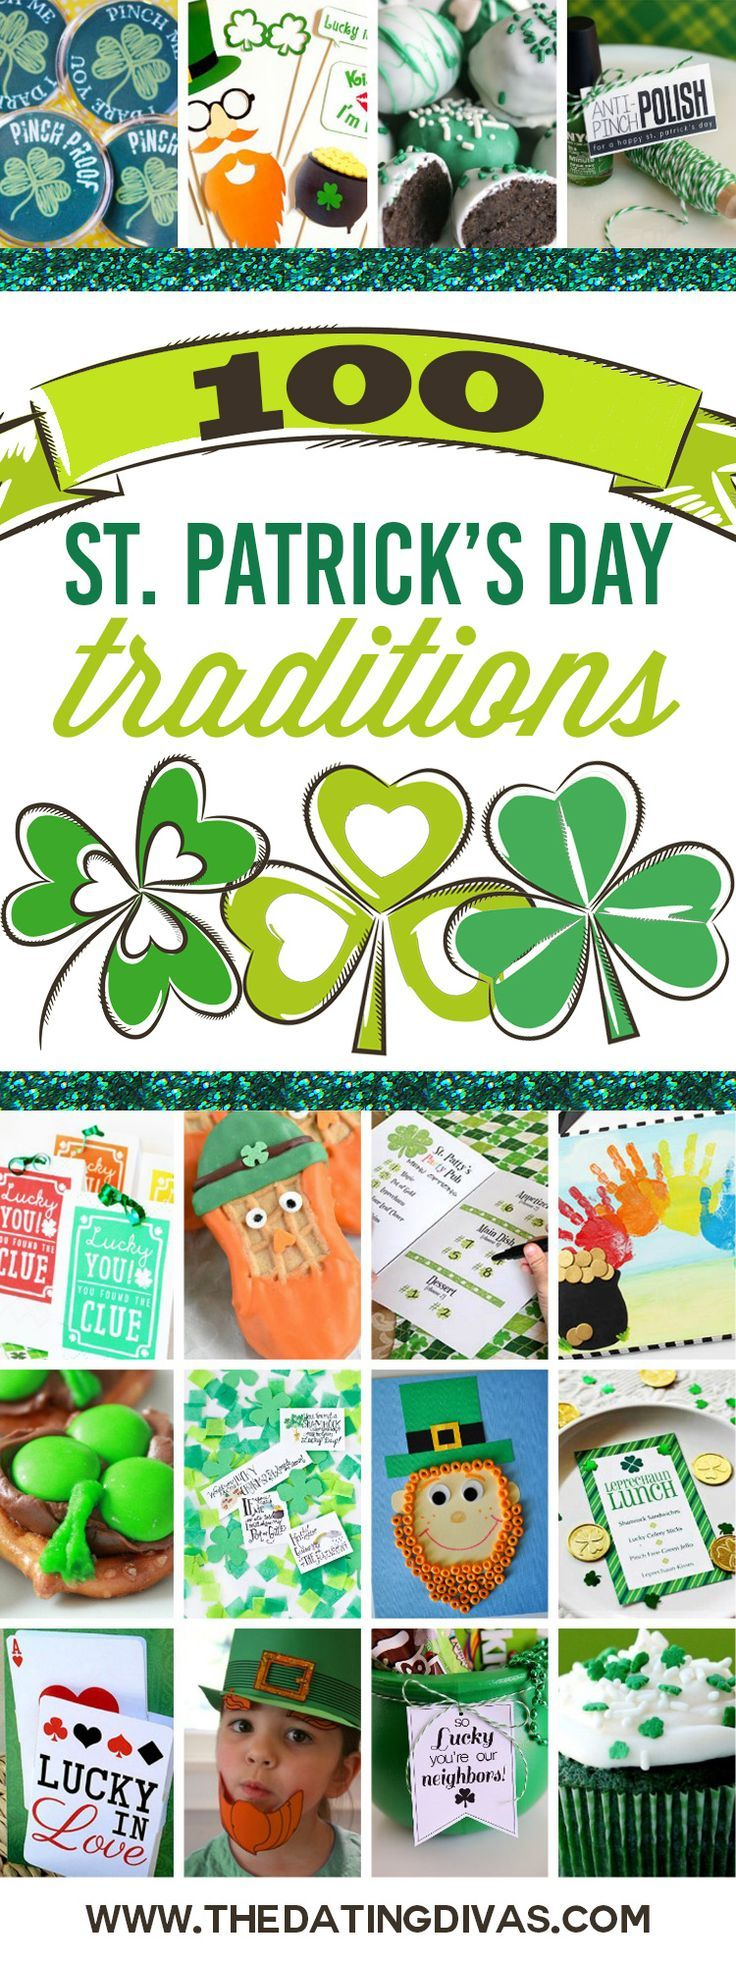 100 St. Patrick's Day Traditions!